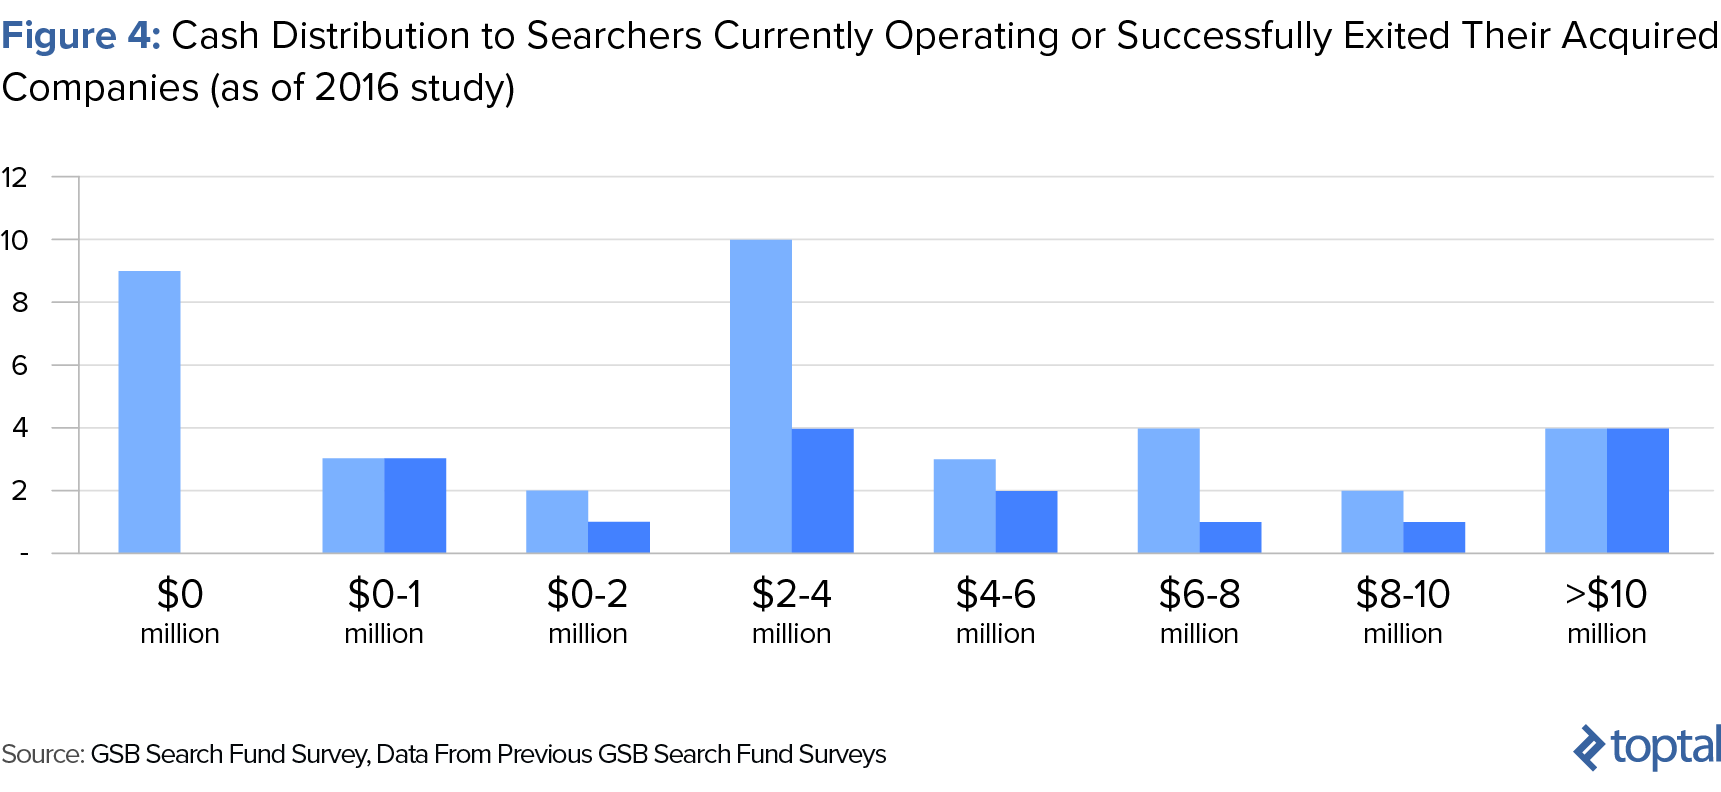 Figure 4: Cash Distribution to Searchers Currently Operating or Successfully Exited Their Acquired Companies, as of 2016 study